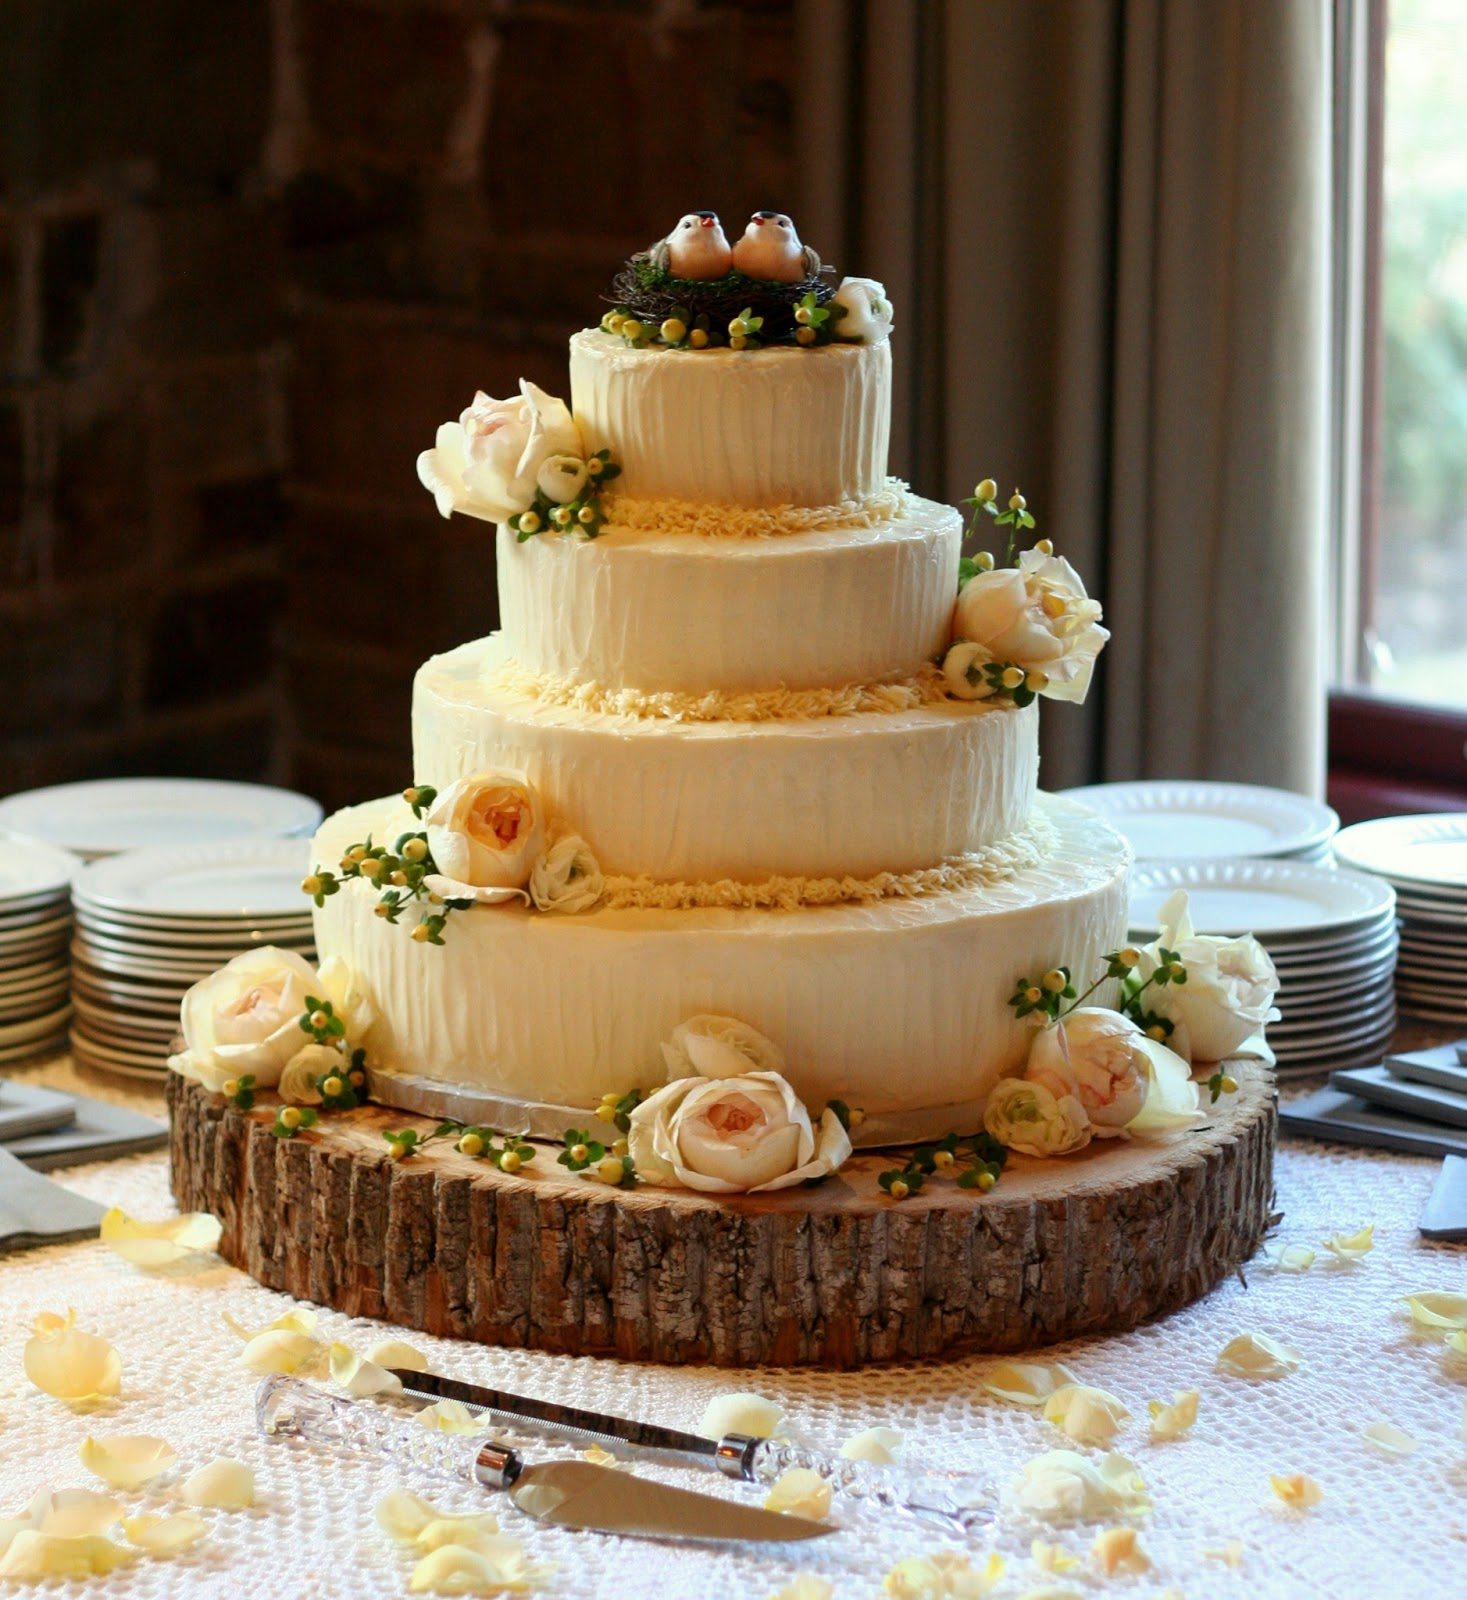 Cake Design Bakery : 6 Stunning Rustic Wedding Cake Ideas - Wedding Cakes